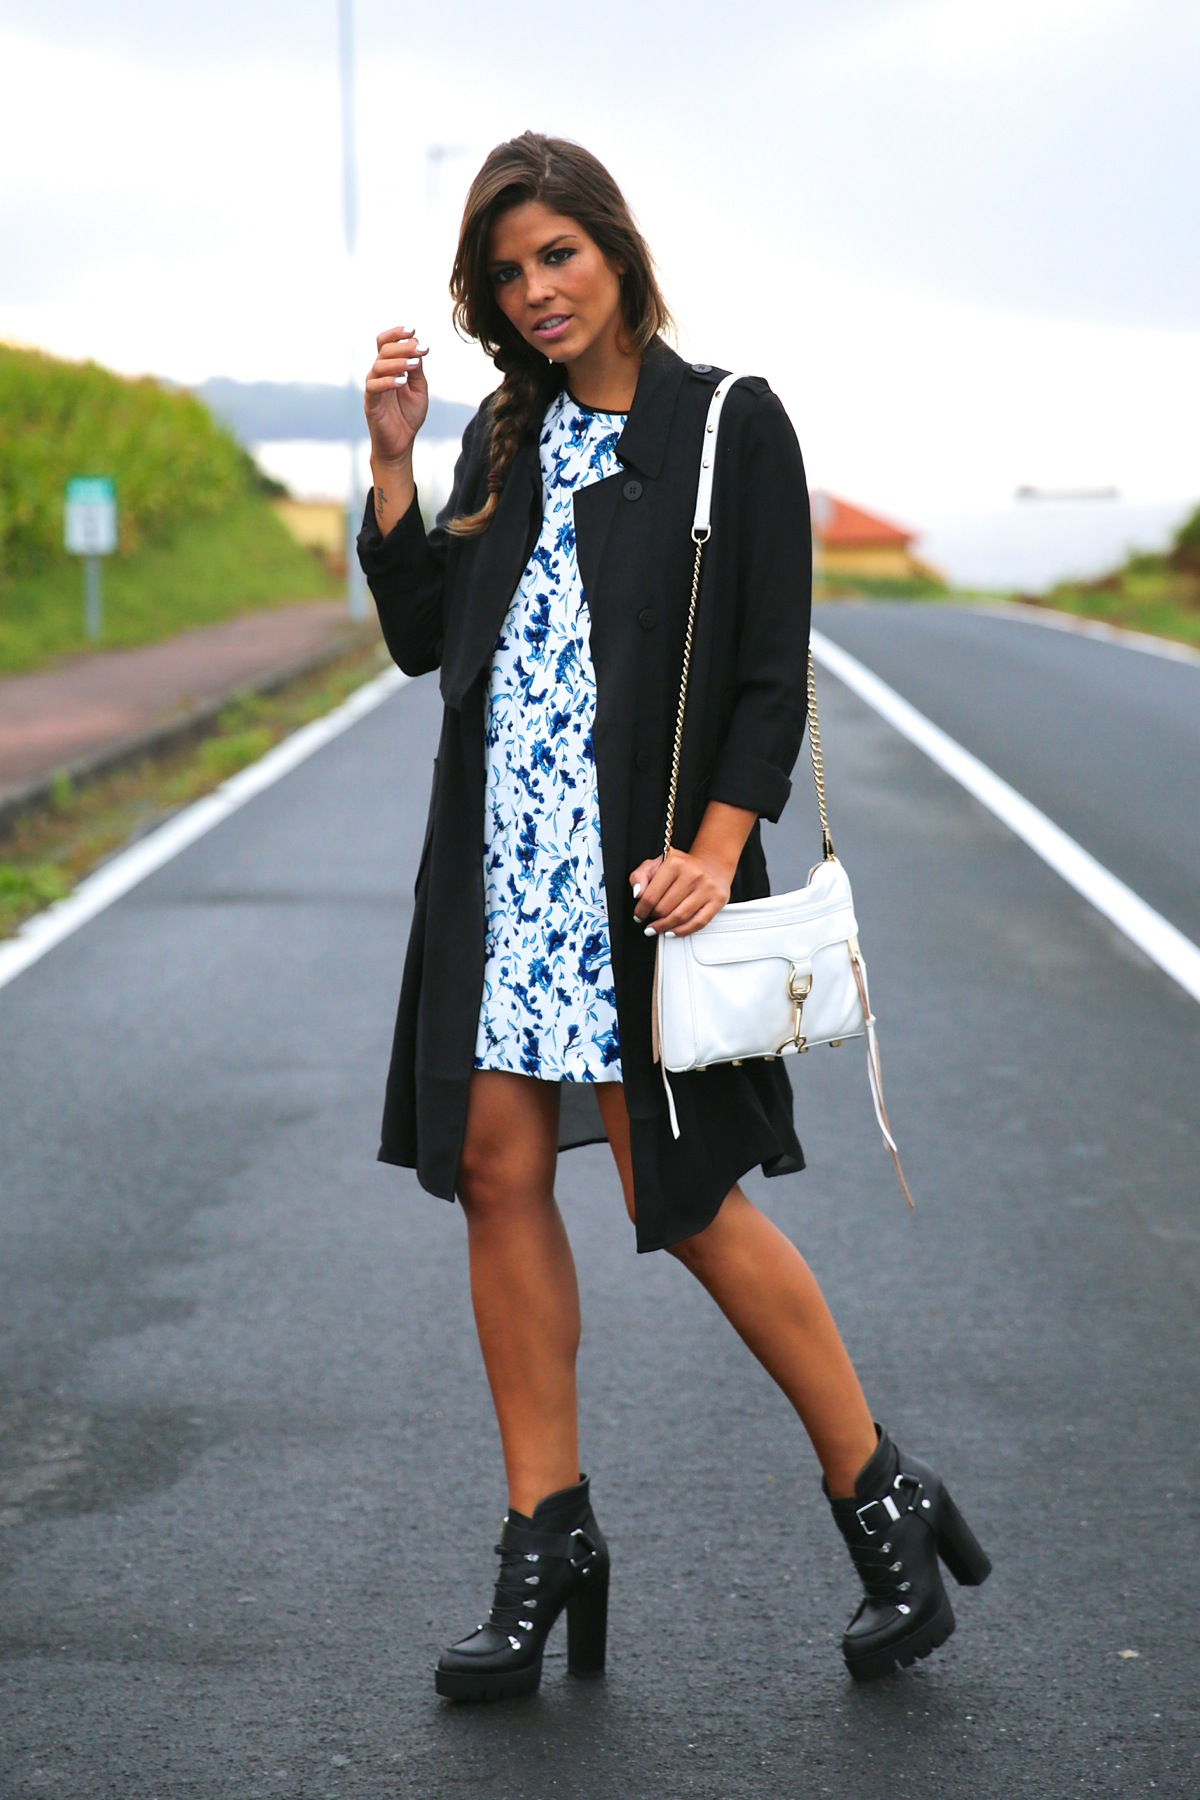 trendy_taste-look-outfit-street_style-ootd-blog-blogger-fashion_spain-moda_españa-combat_boots-botas_rock-parka-kimono-bolso_blanco-white_bag-galicia-vestido_flores-flower_print-dress-12